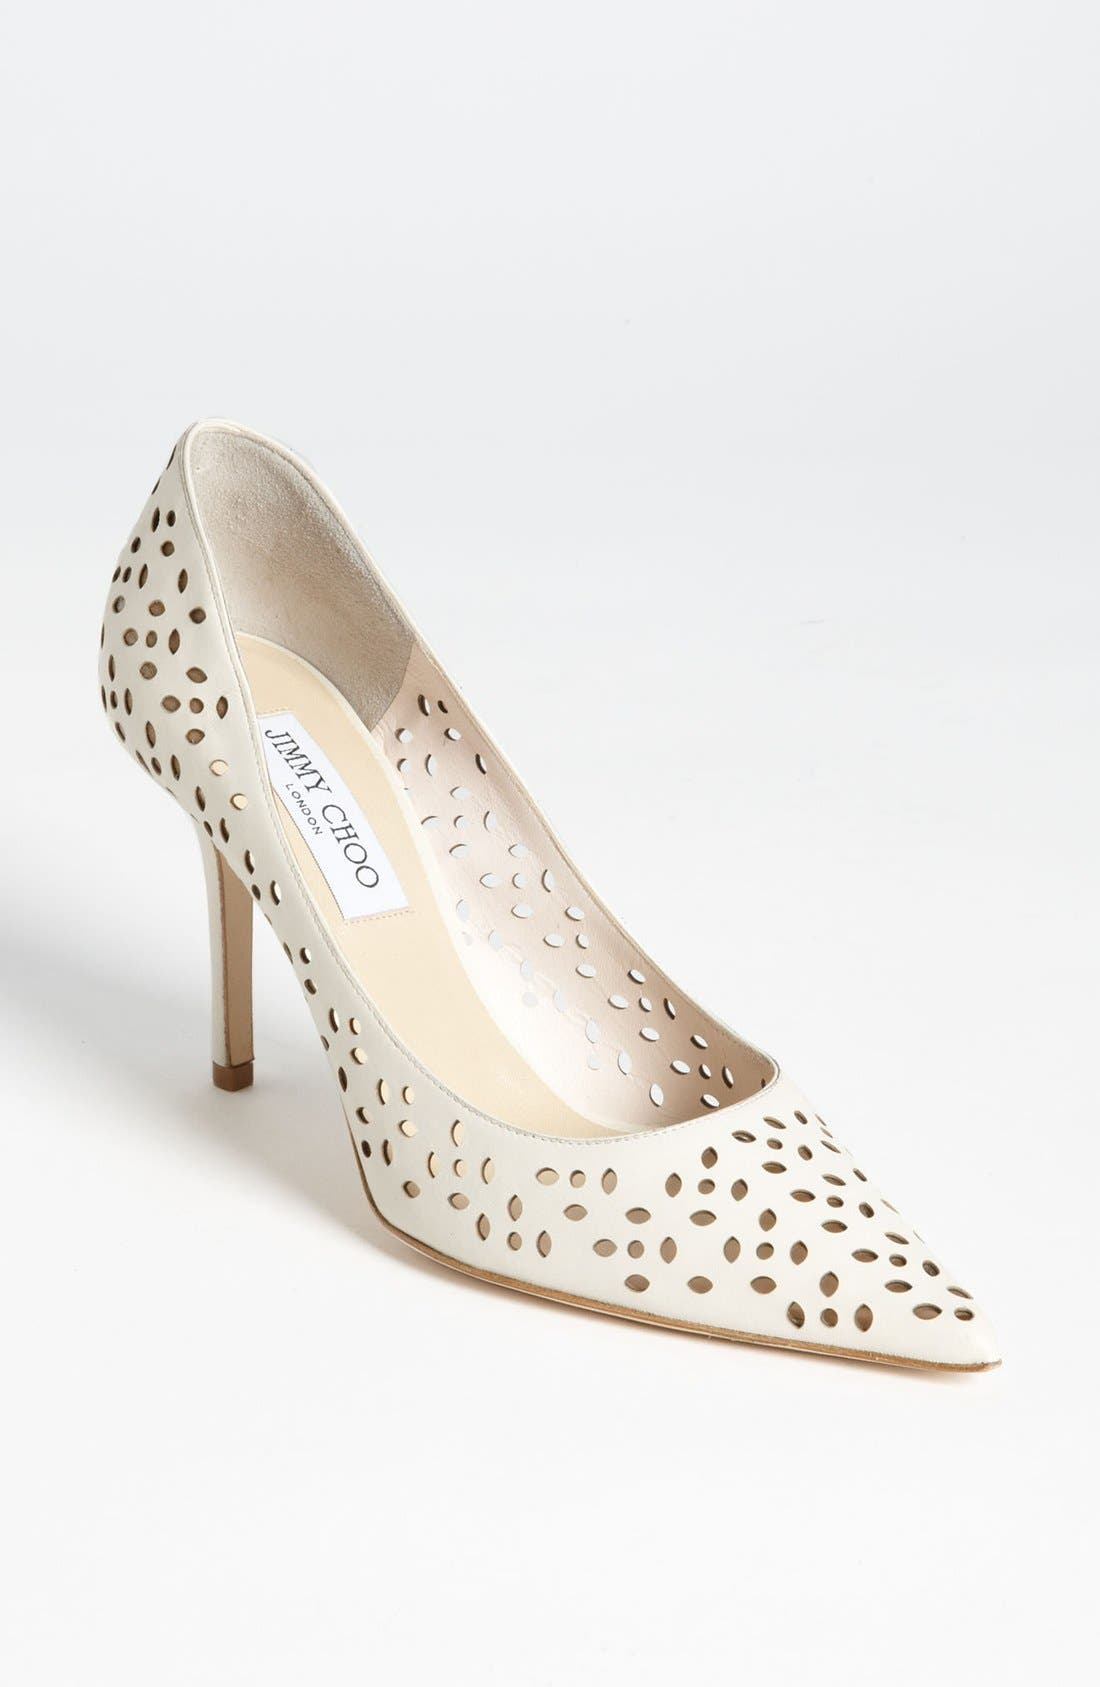 Main Image - Jimmy Choo 'Agnes' Perforated Pump